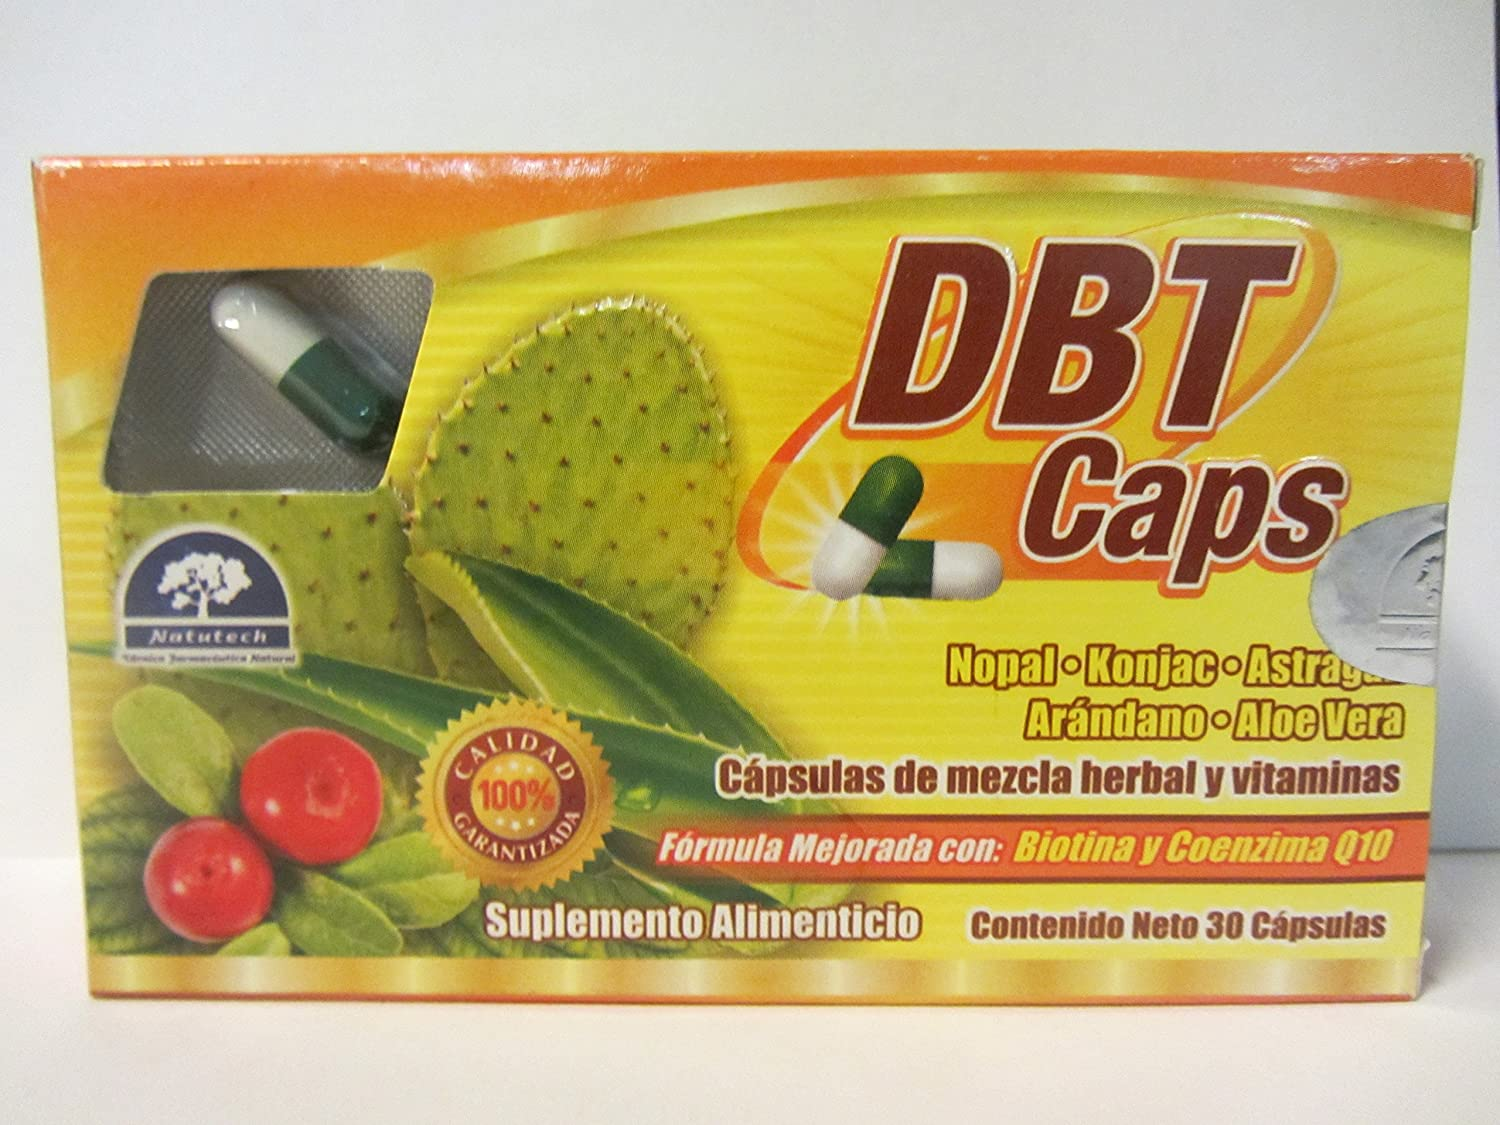 Amazon.com: DBT CAPS Helps reduce weight, regulate your digestive system, aid in treating ulcers, colitis, gastritis and constipation.